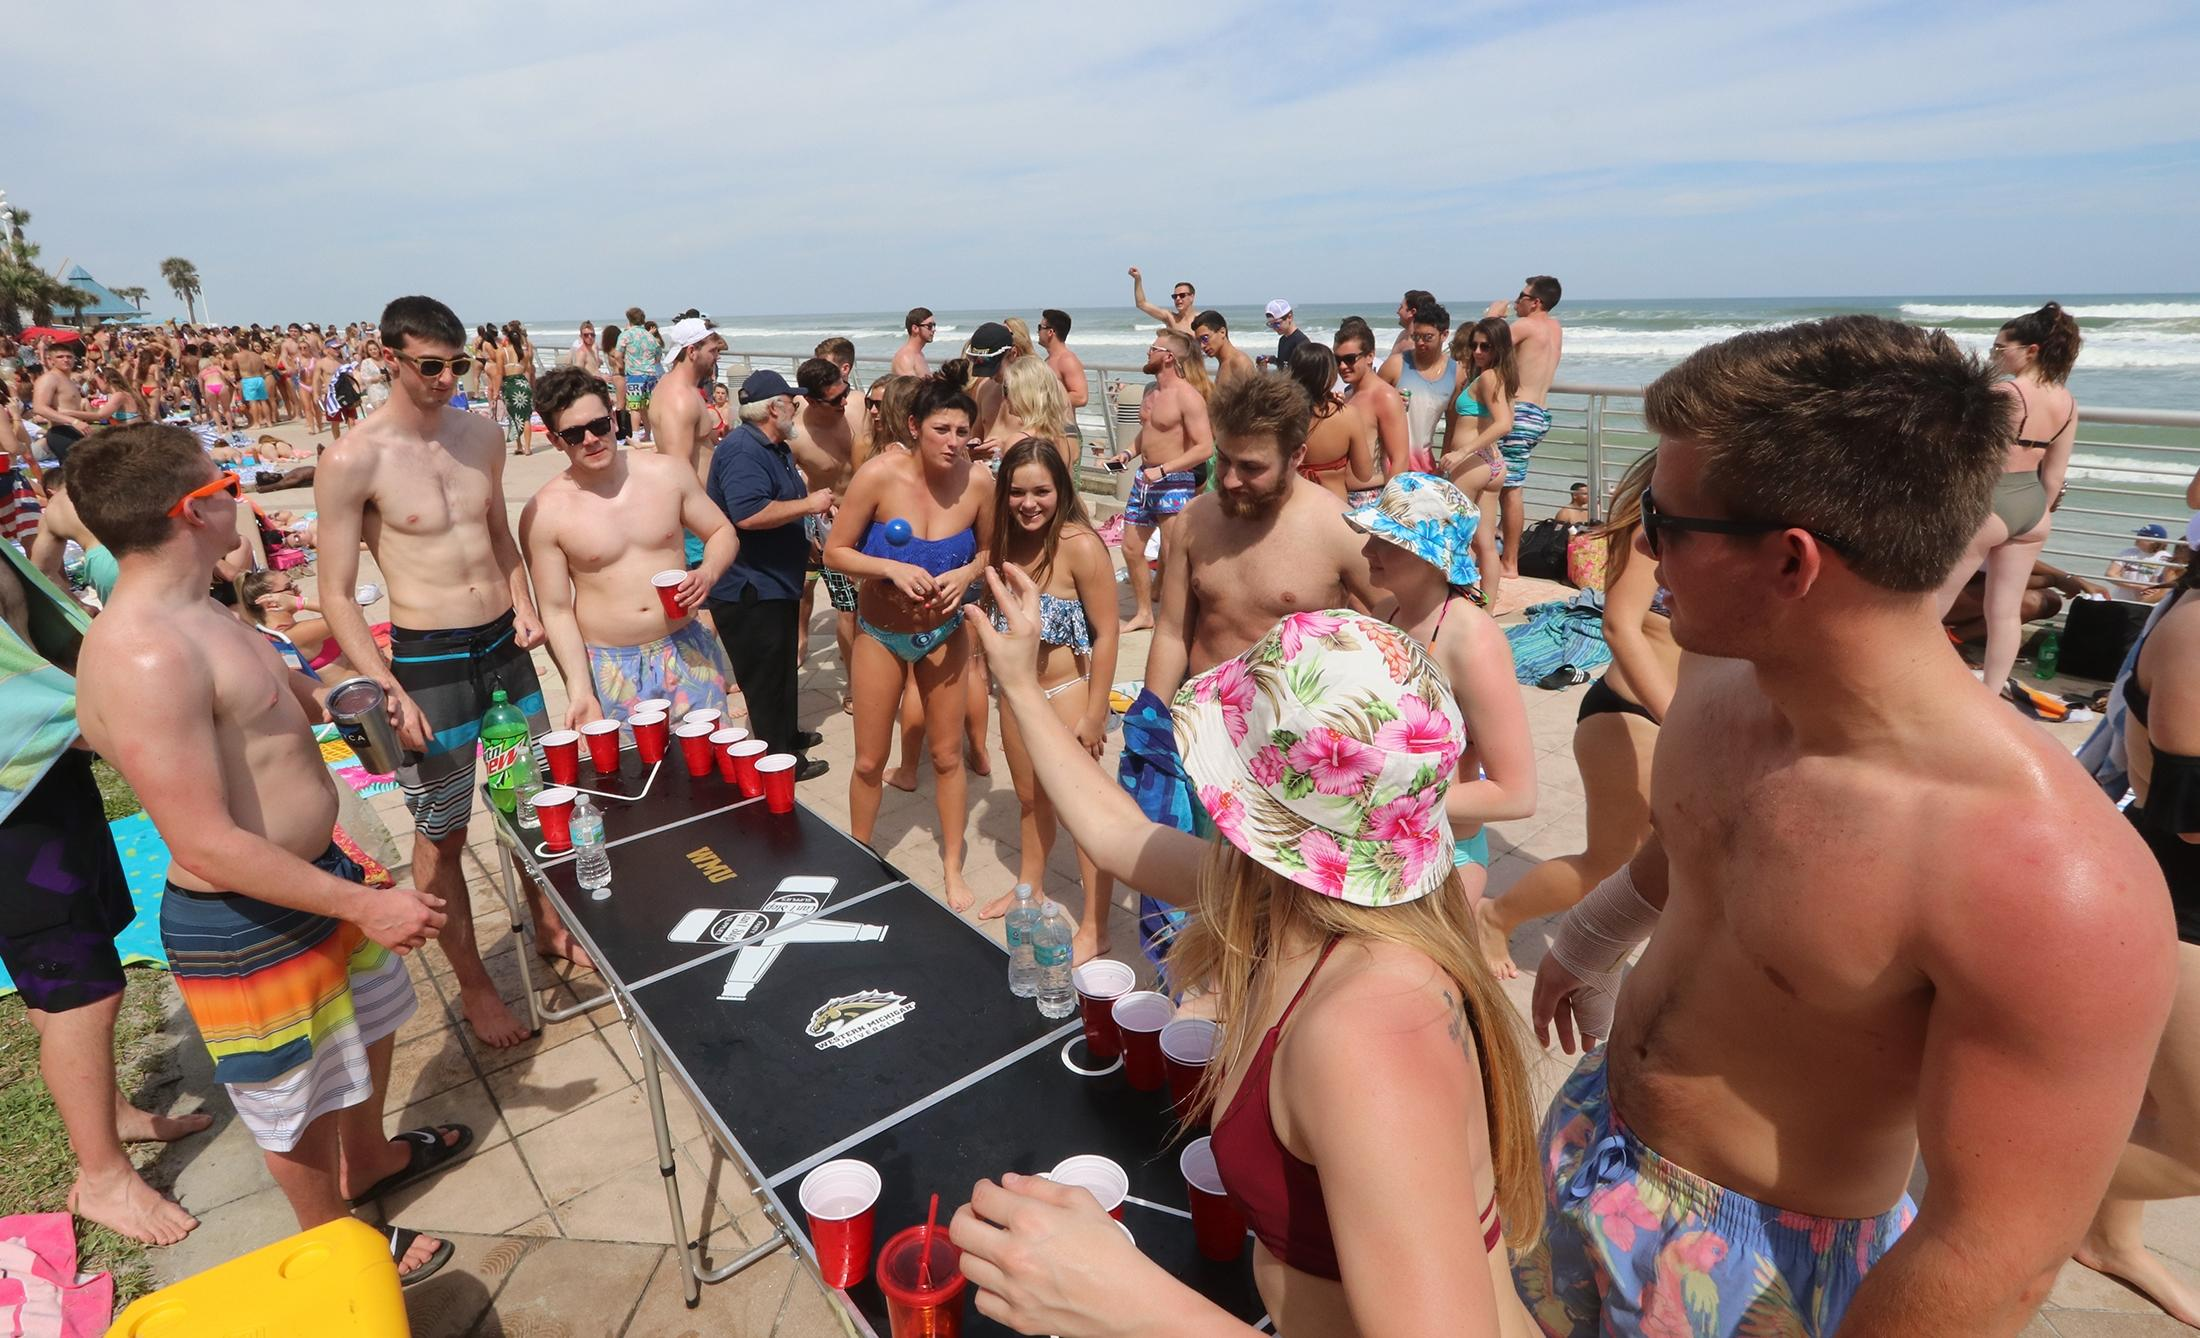 A survey conducted by The Chanticleer found that 53 percent of college students plan to travel for spring break amid COVID-19 pandemic. (Courtesy of The Daytona Beach News-Journal)